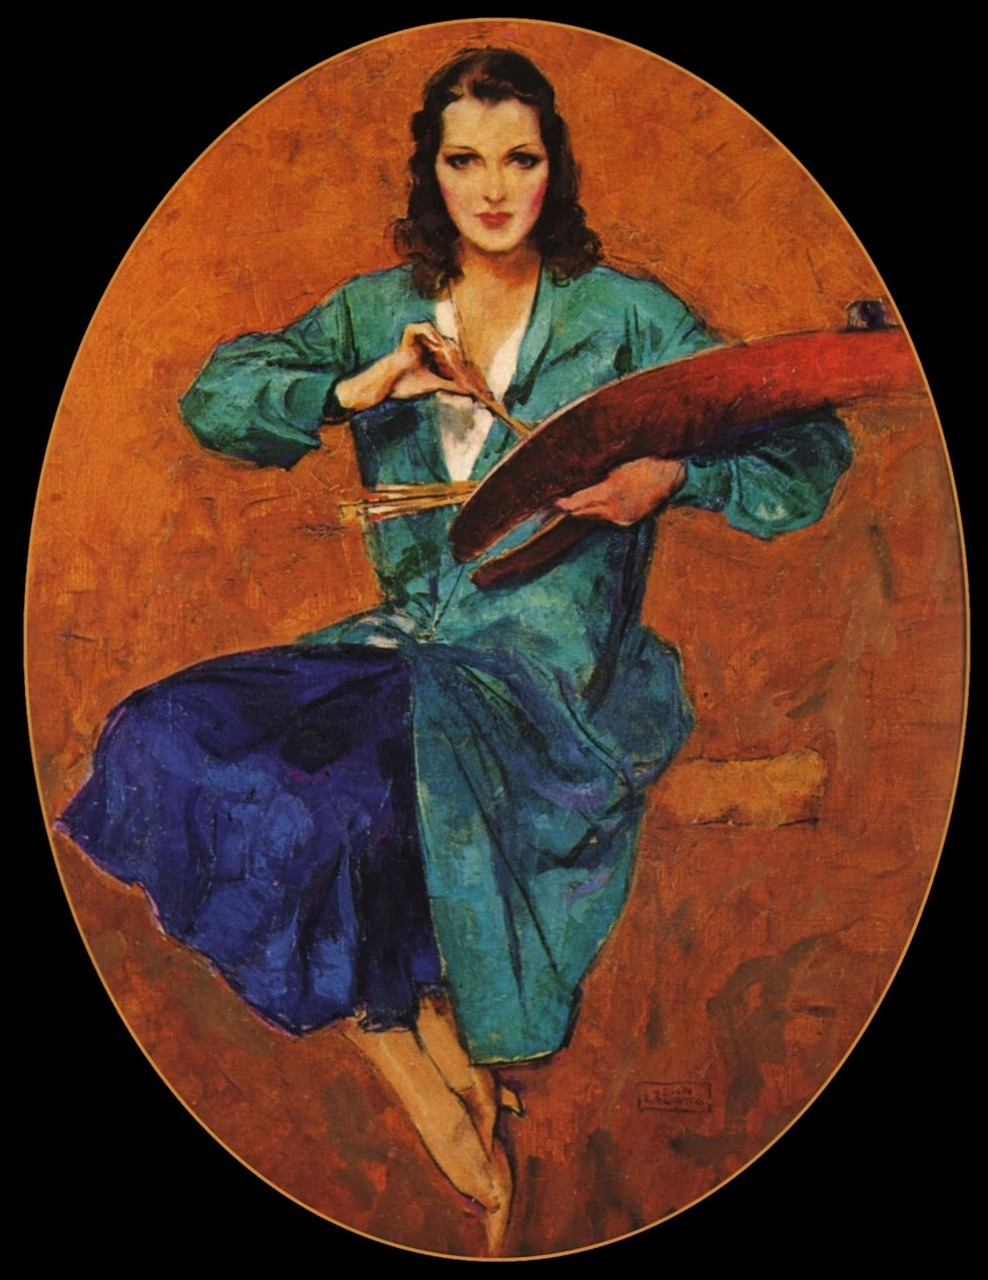 John LaGatta - Woman with Palette - c.1940s - via The Pictorial Arts